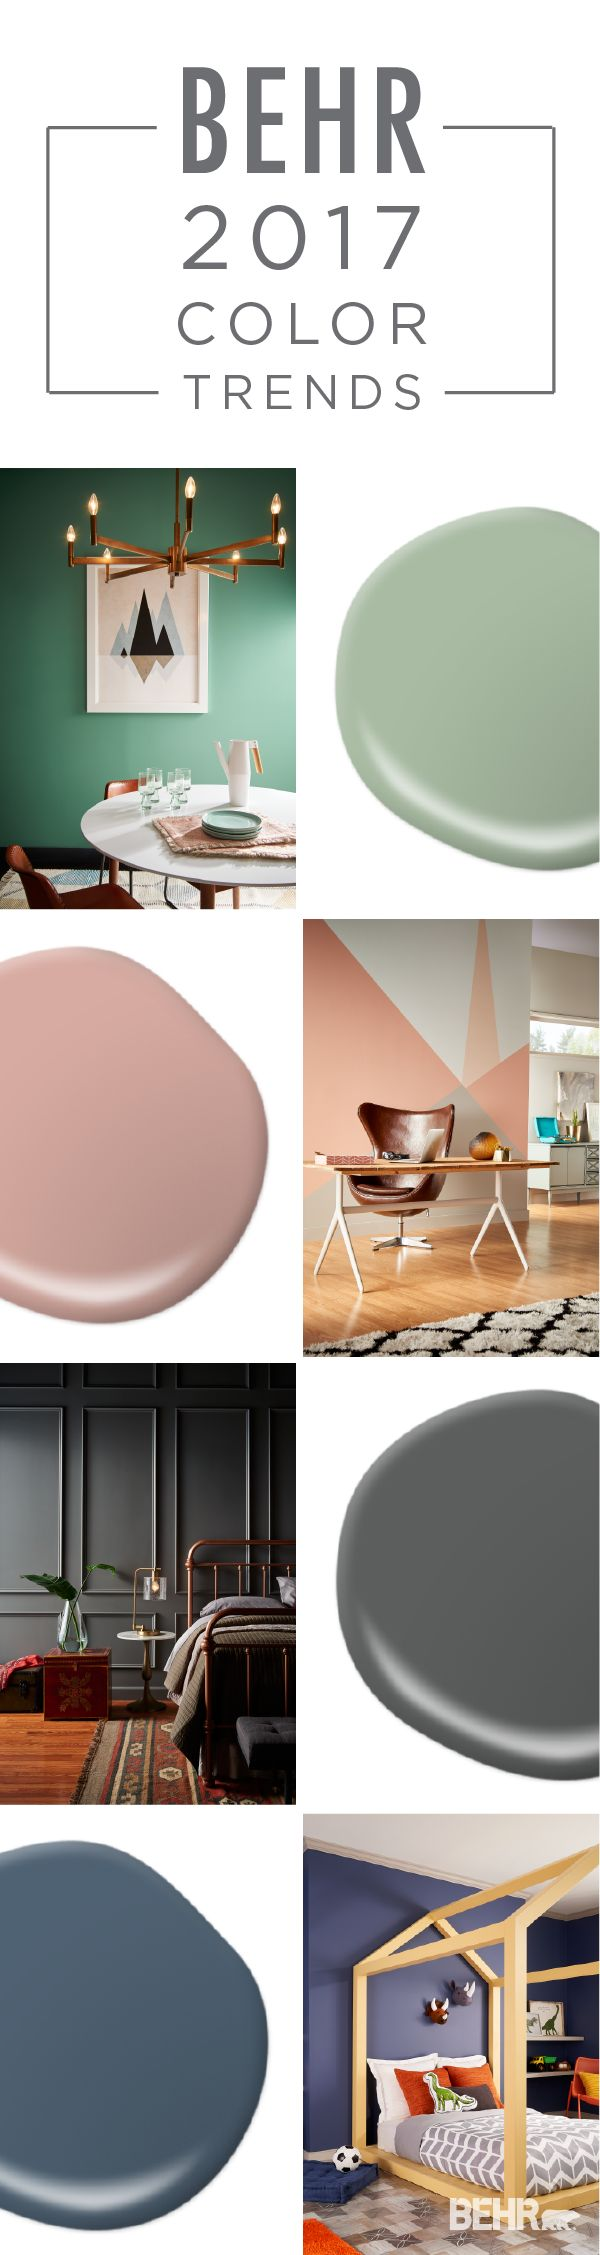 25 Best Ideas About Color Trends On Pinterest Color